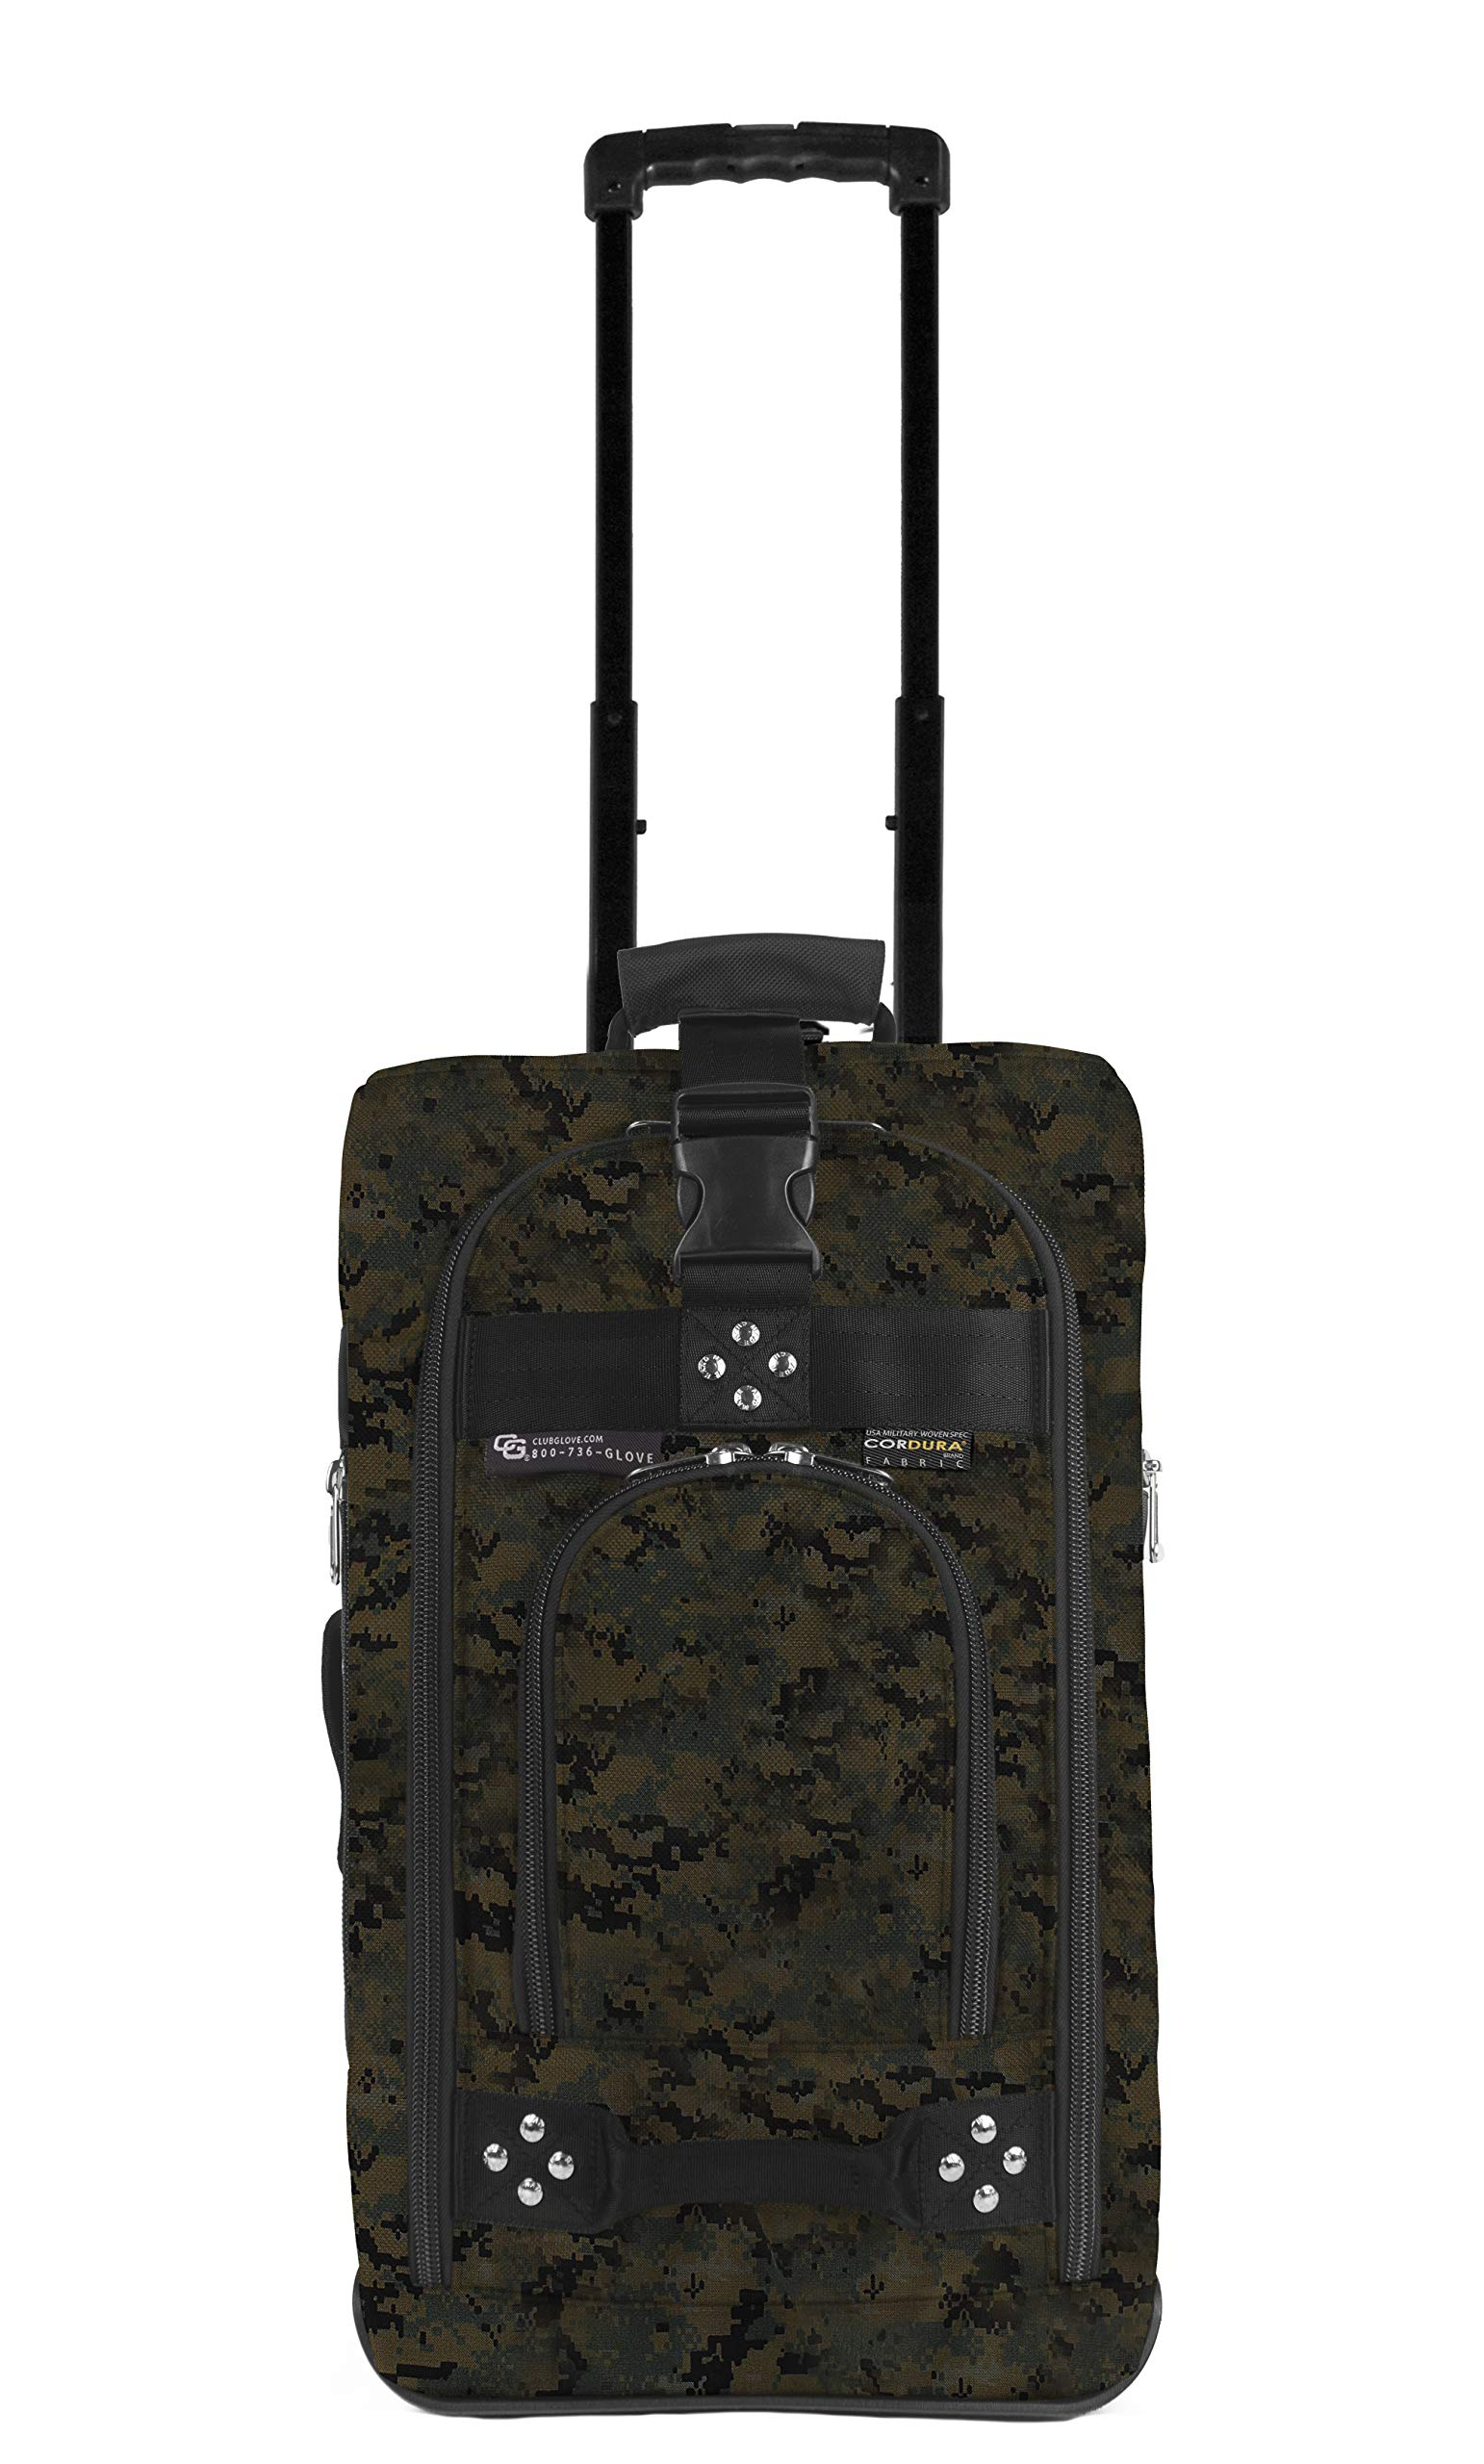 Club Glove Carry On Bag III Travel Luggage (Camouflage)